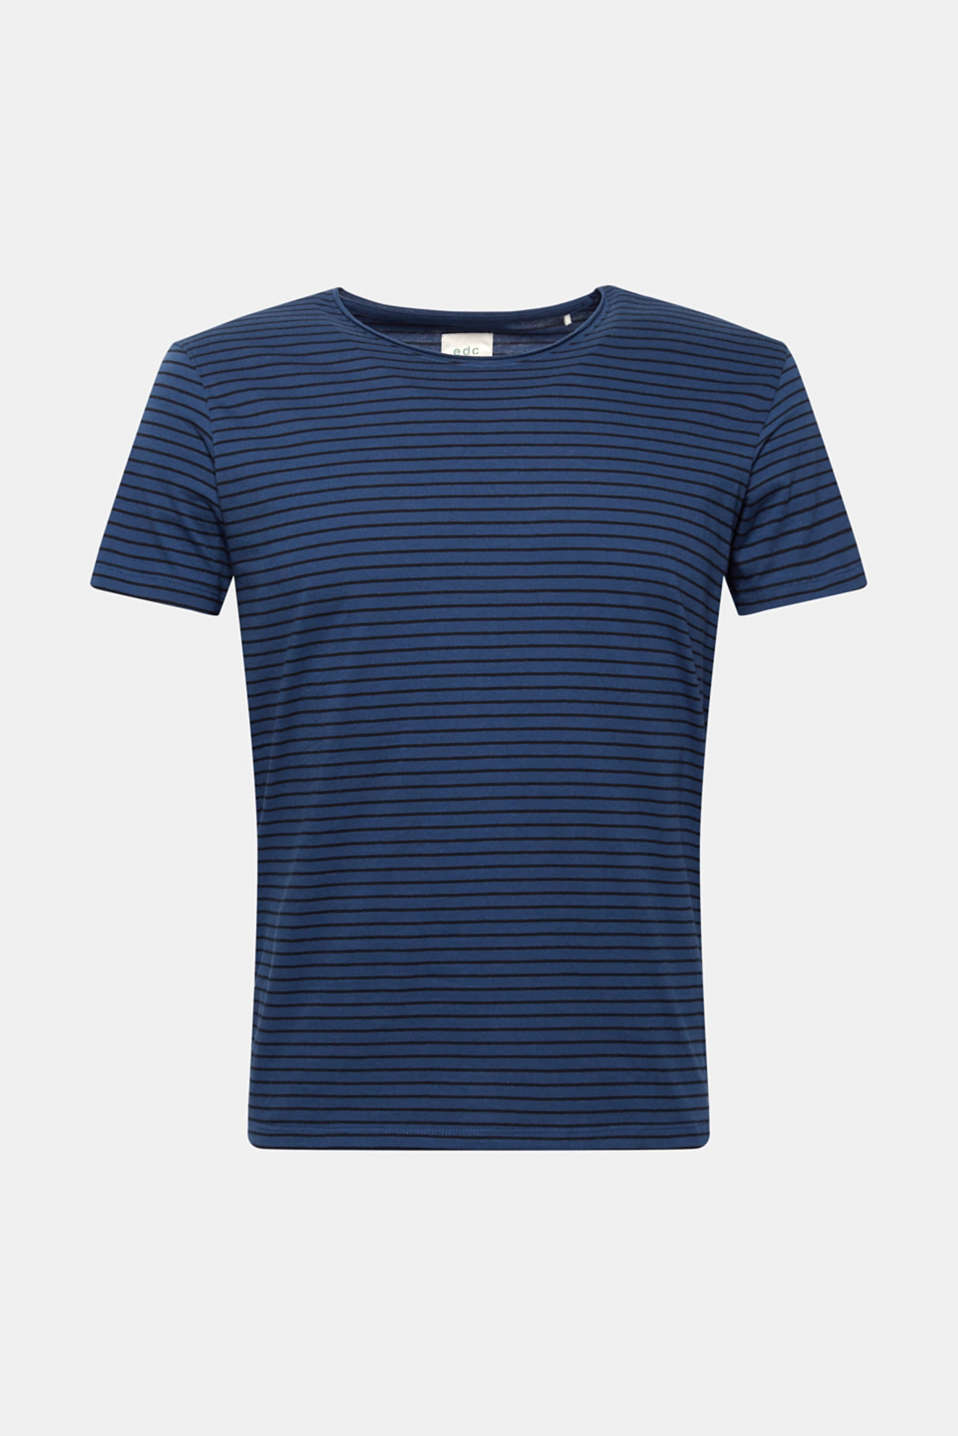 Jersey T-shirt with stripes, 100% cotton, BLUE, detail image number 5